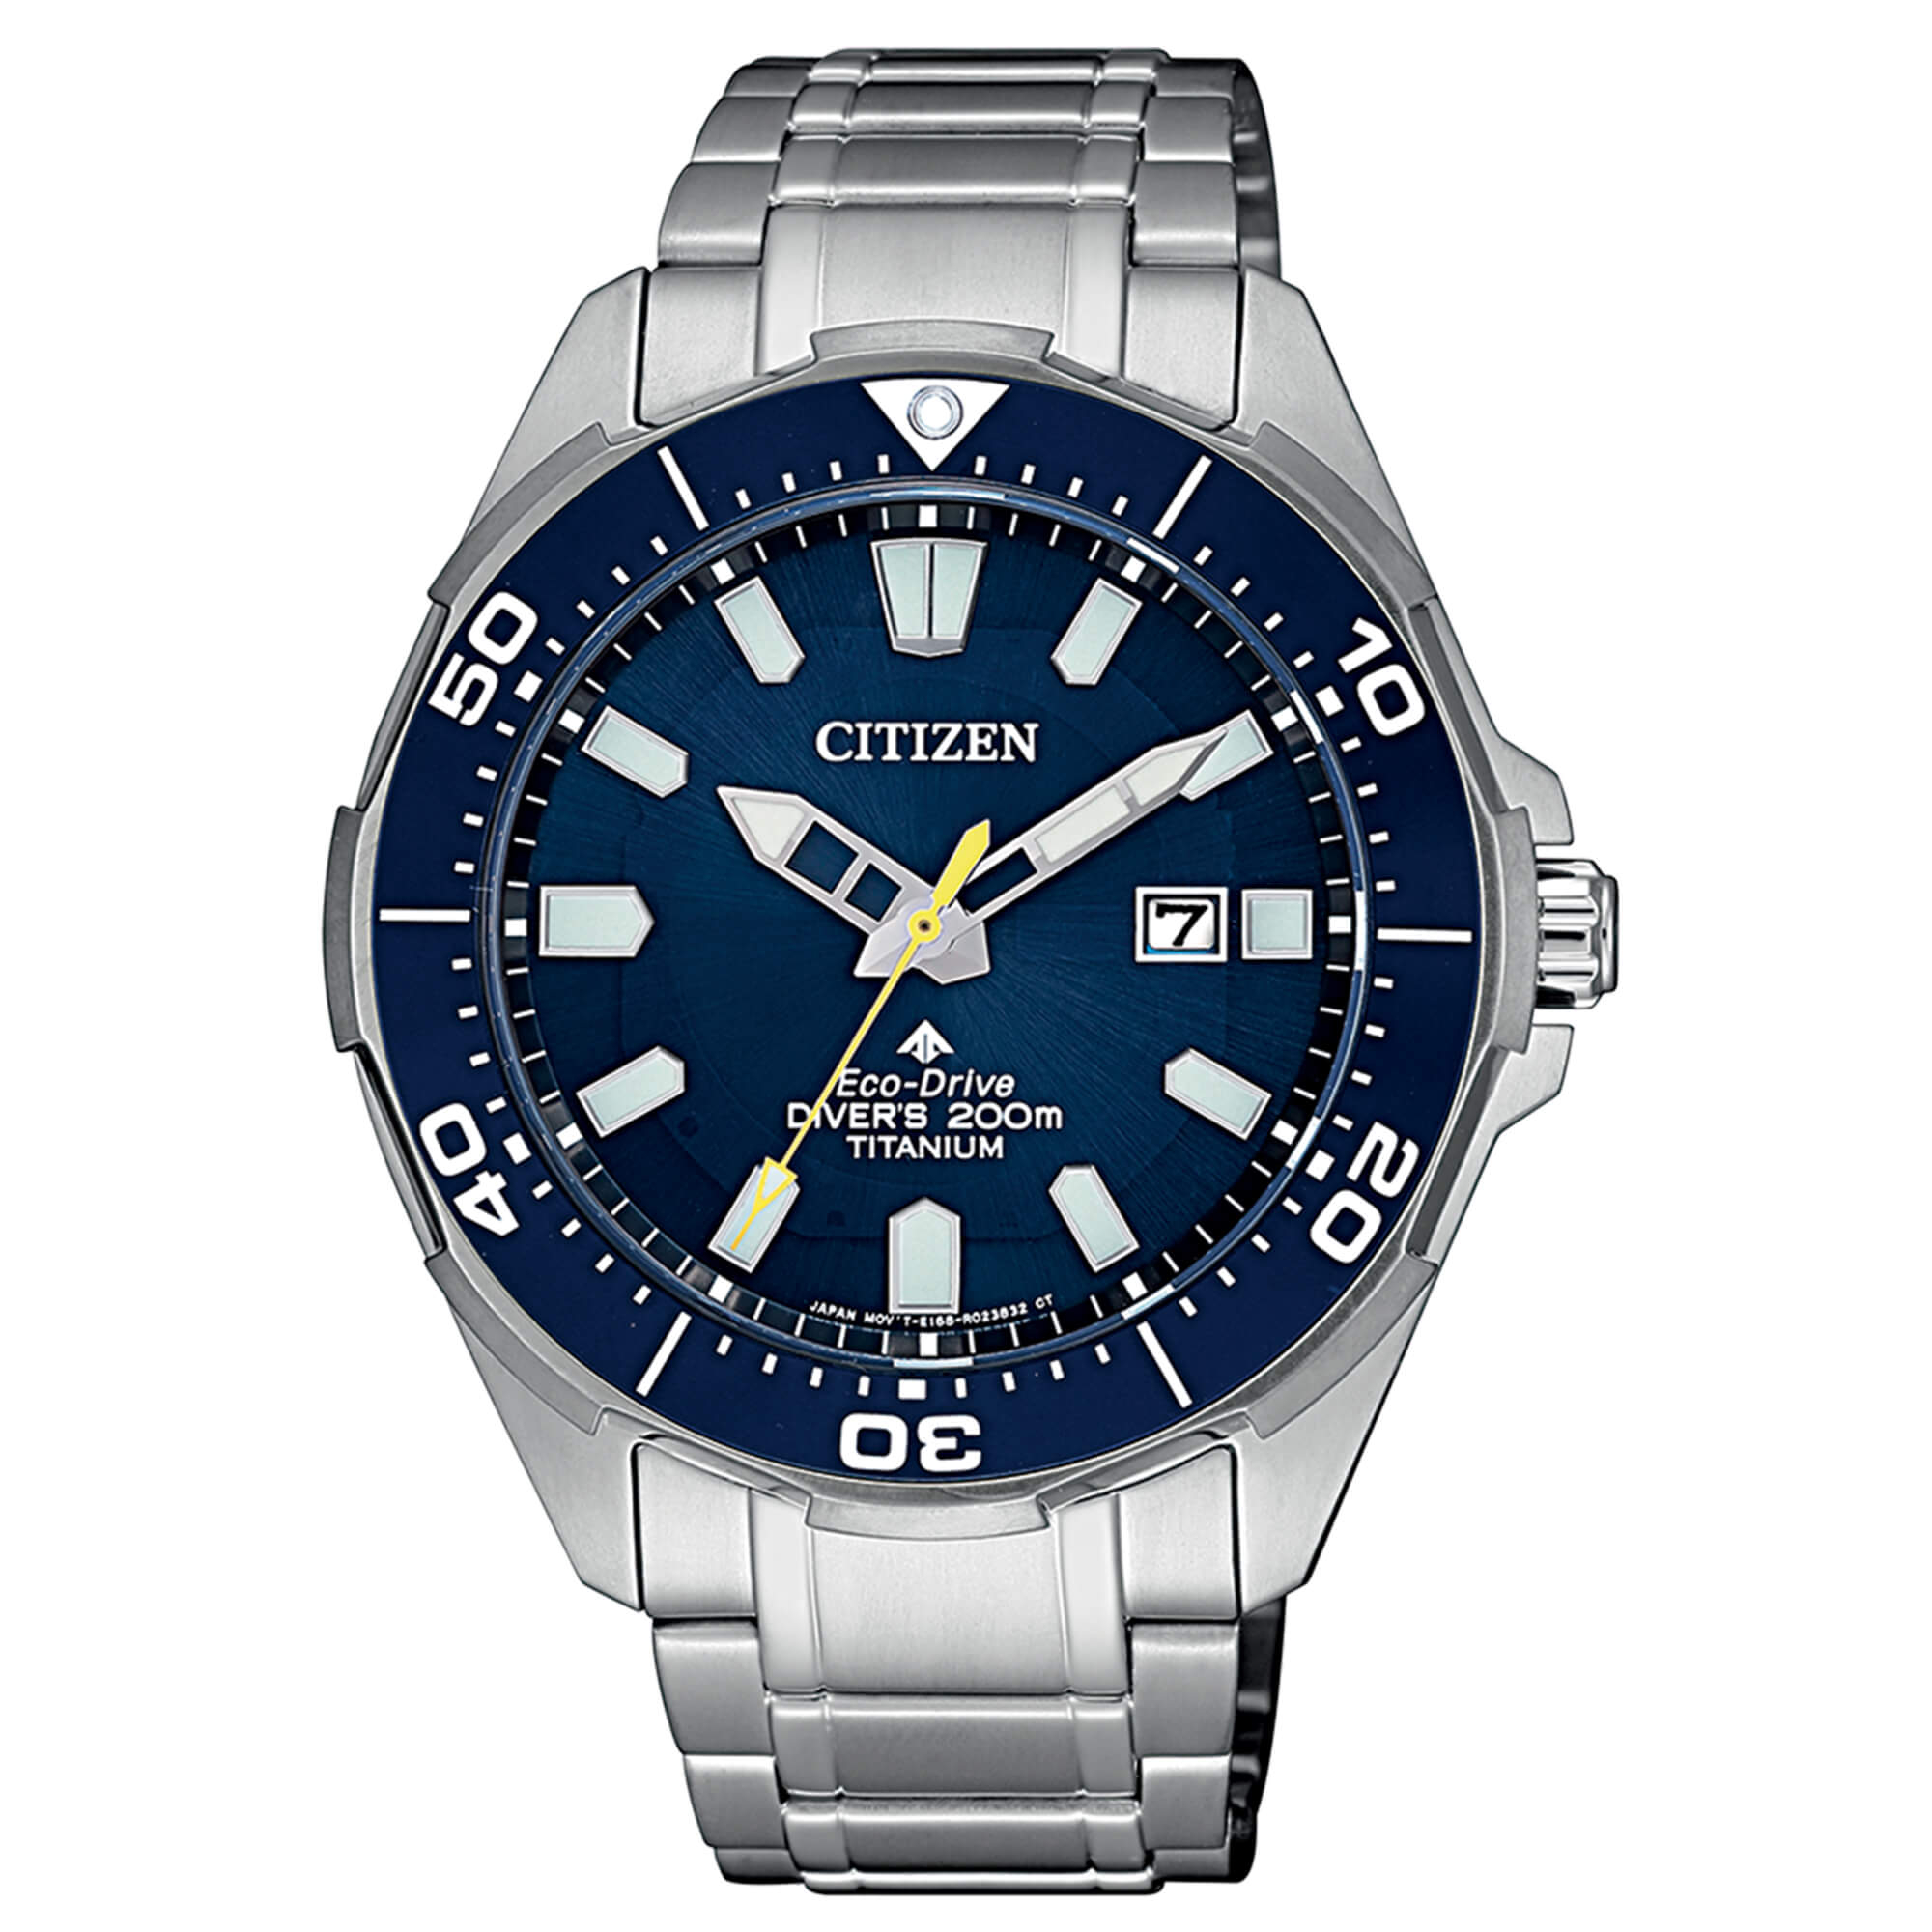 Citizen Diver's Eco Drive 200 mt Super Titanio